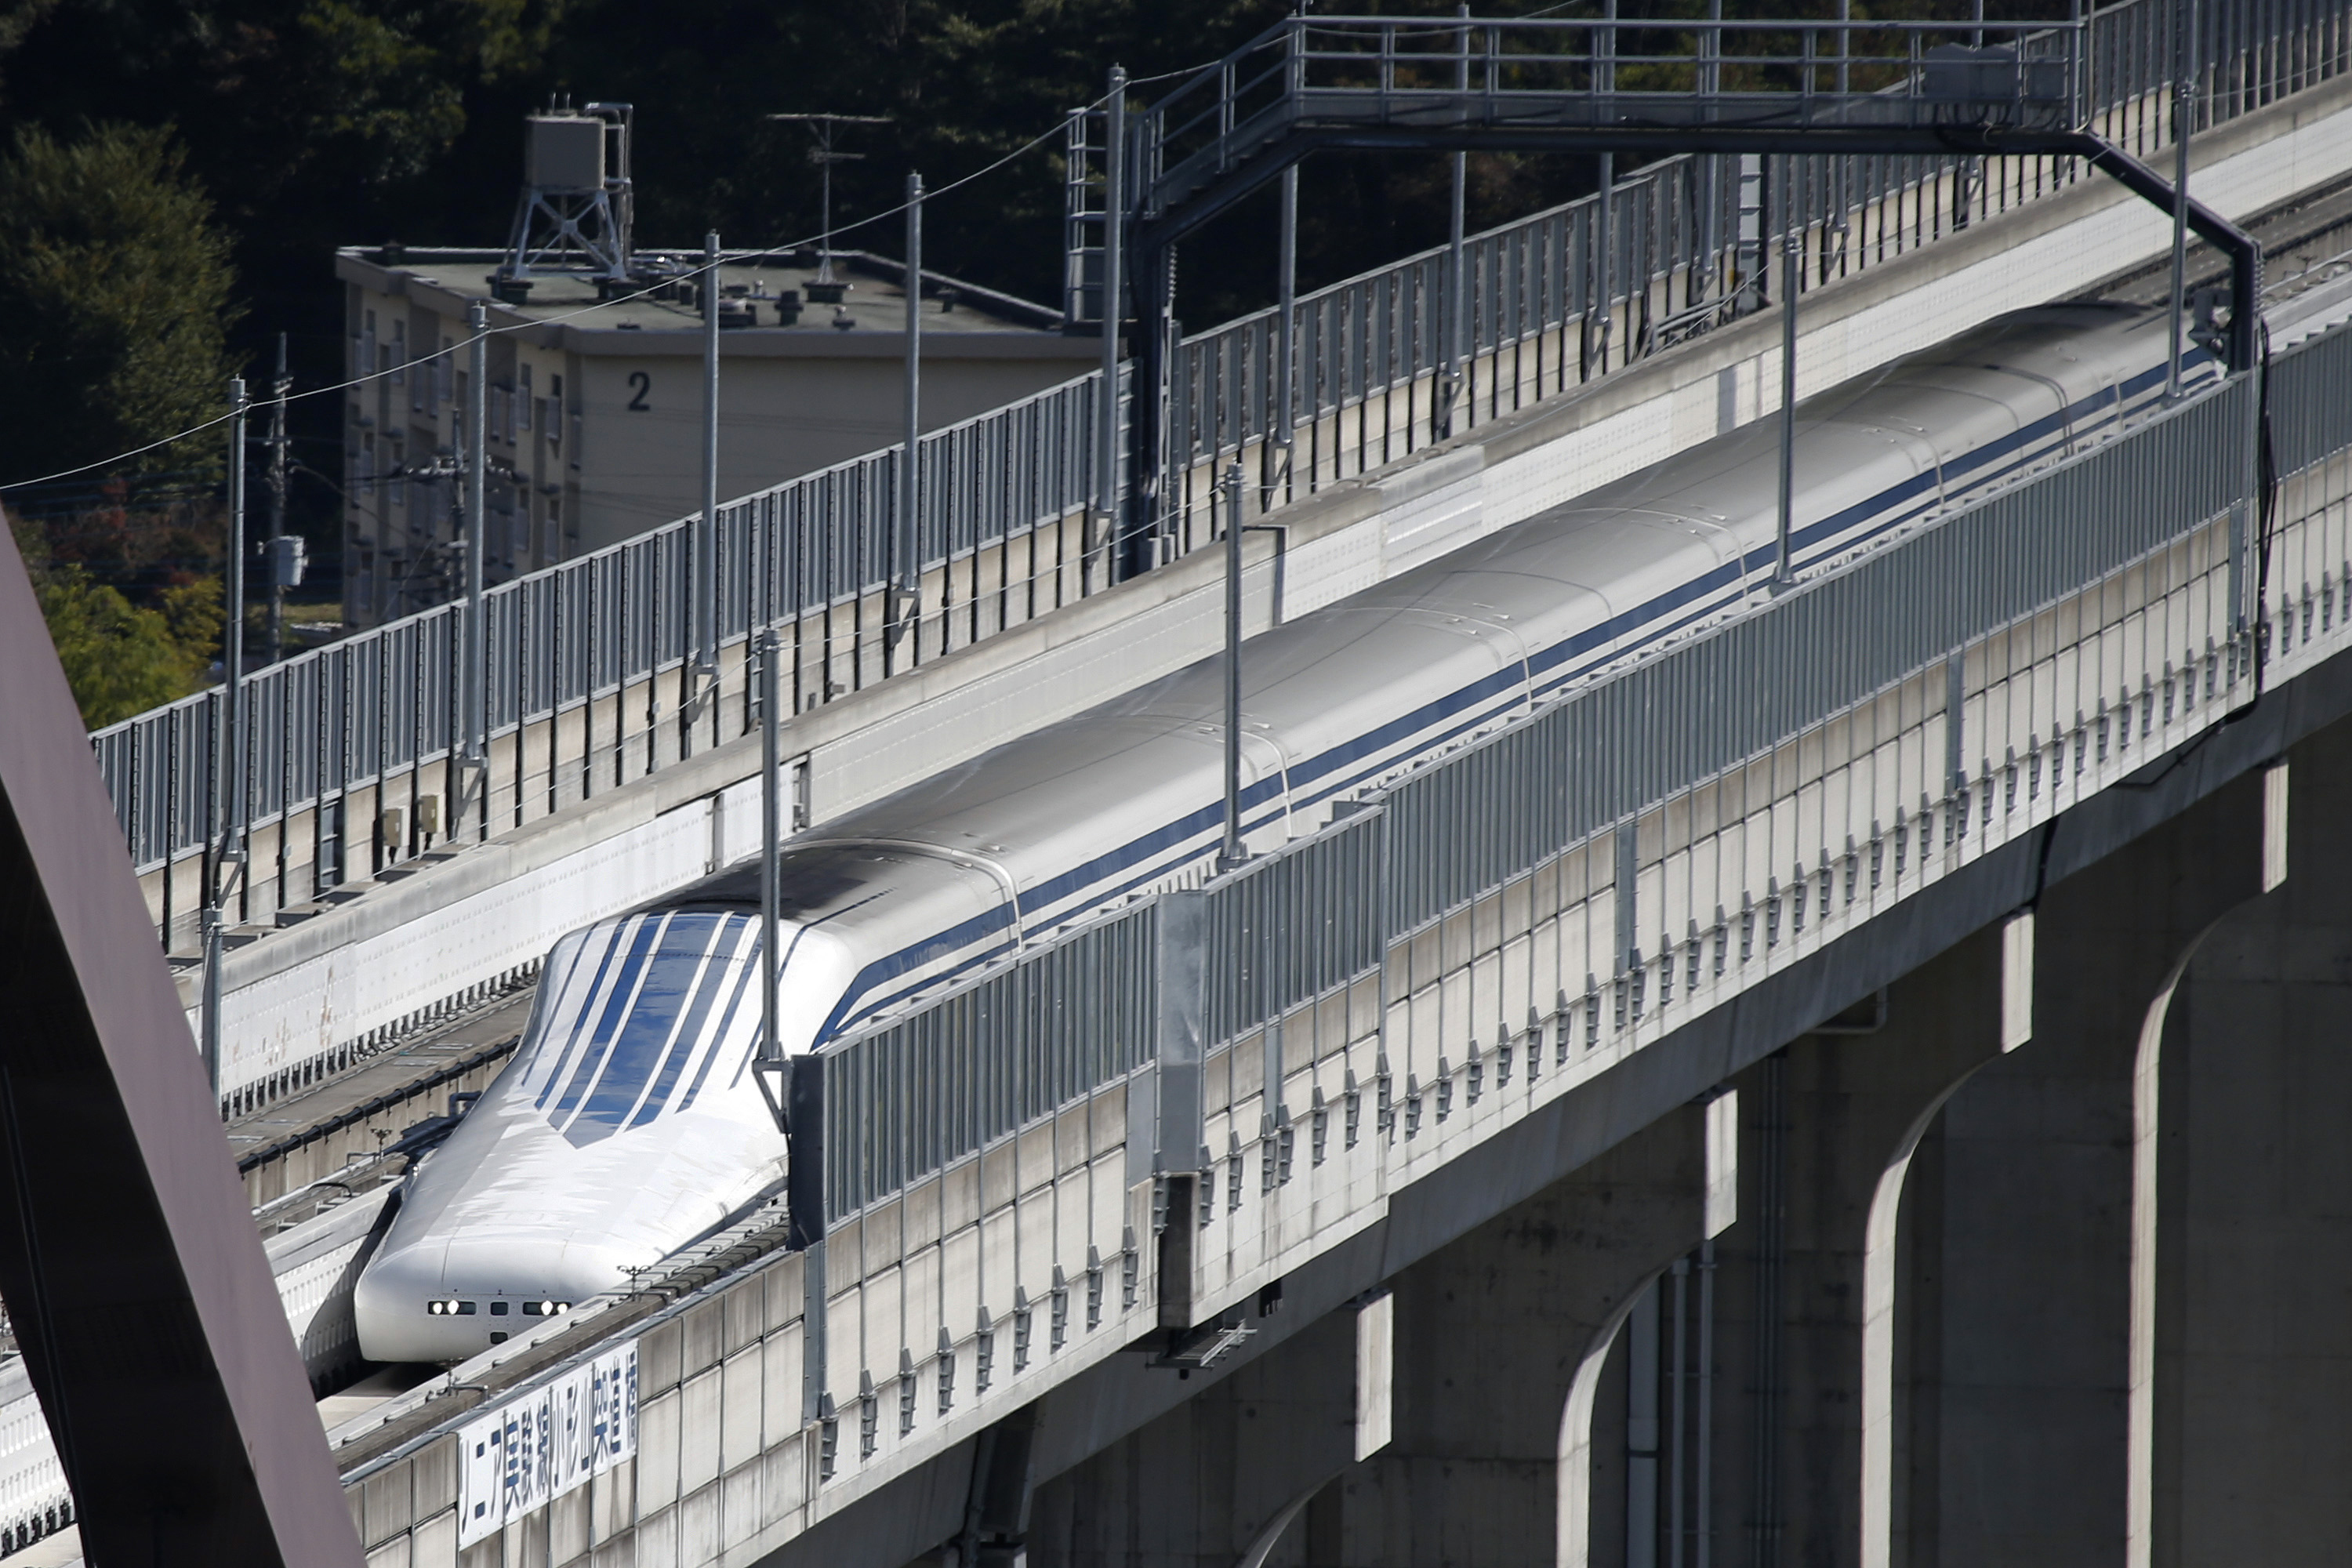 U.S. Party Including Northeast Maglev CEO Wayne Rogers Visits Yamanashi Maglev Test Track